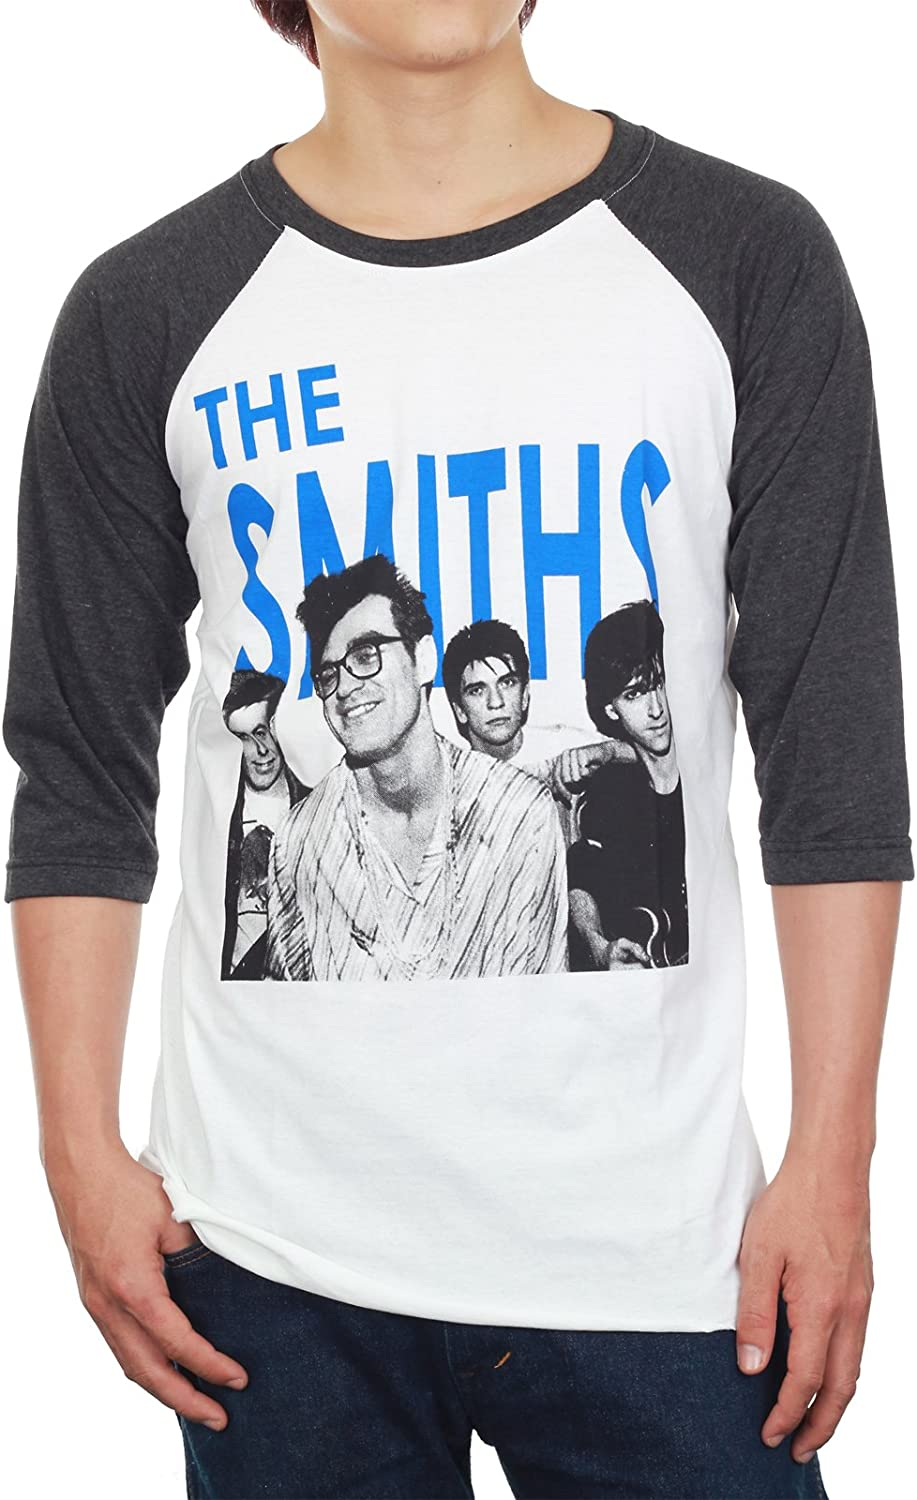 MORRISEY LADIES MUSIC T SHIRT THE SMITHS NEW TOP GIFT W24